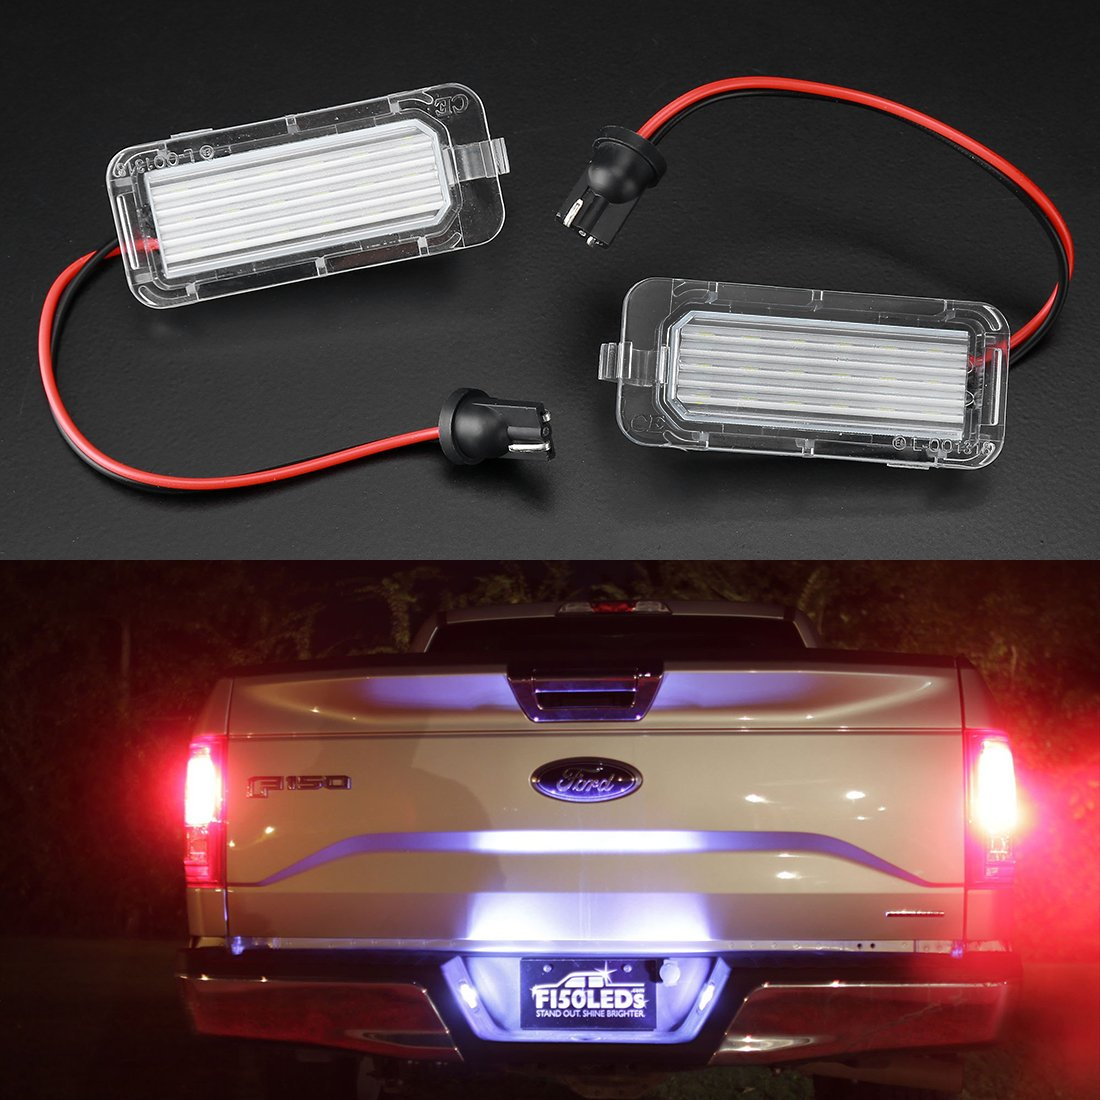 SUPREEE White LED Canbus License Number Plate Light SUPAREE